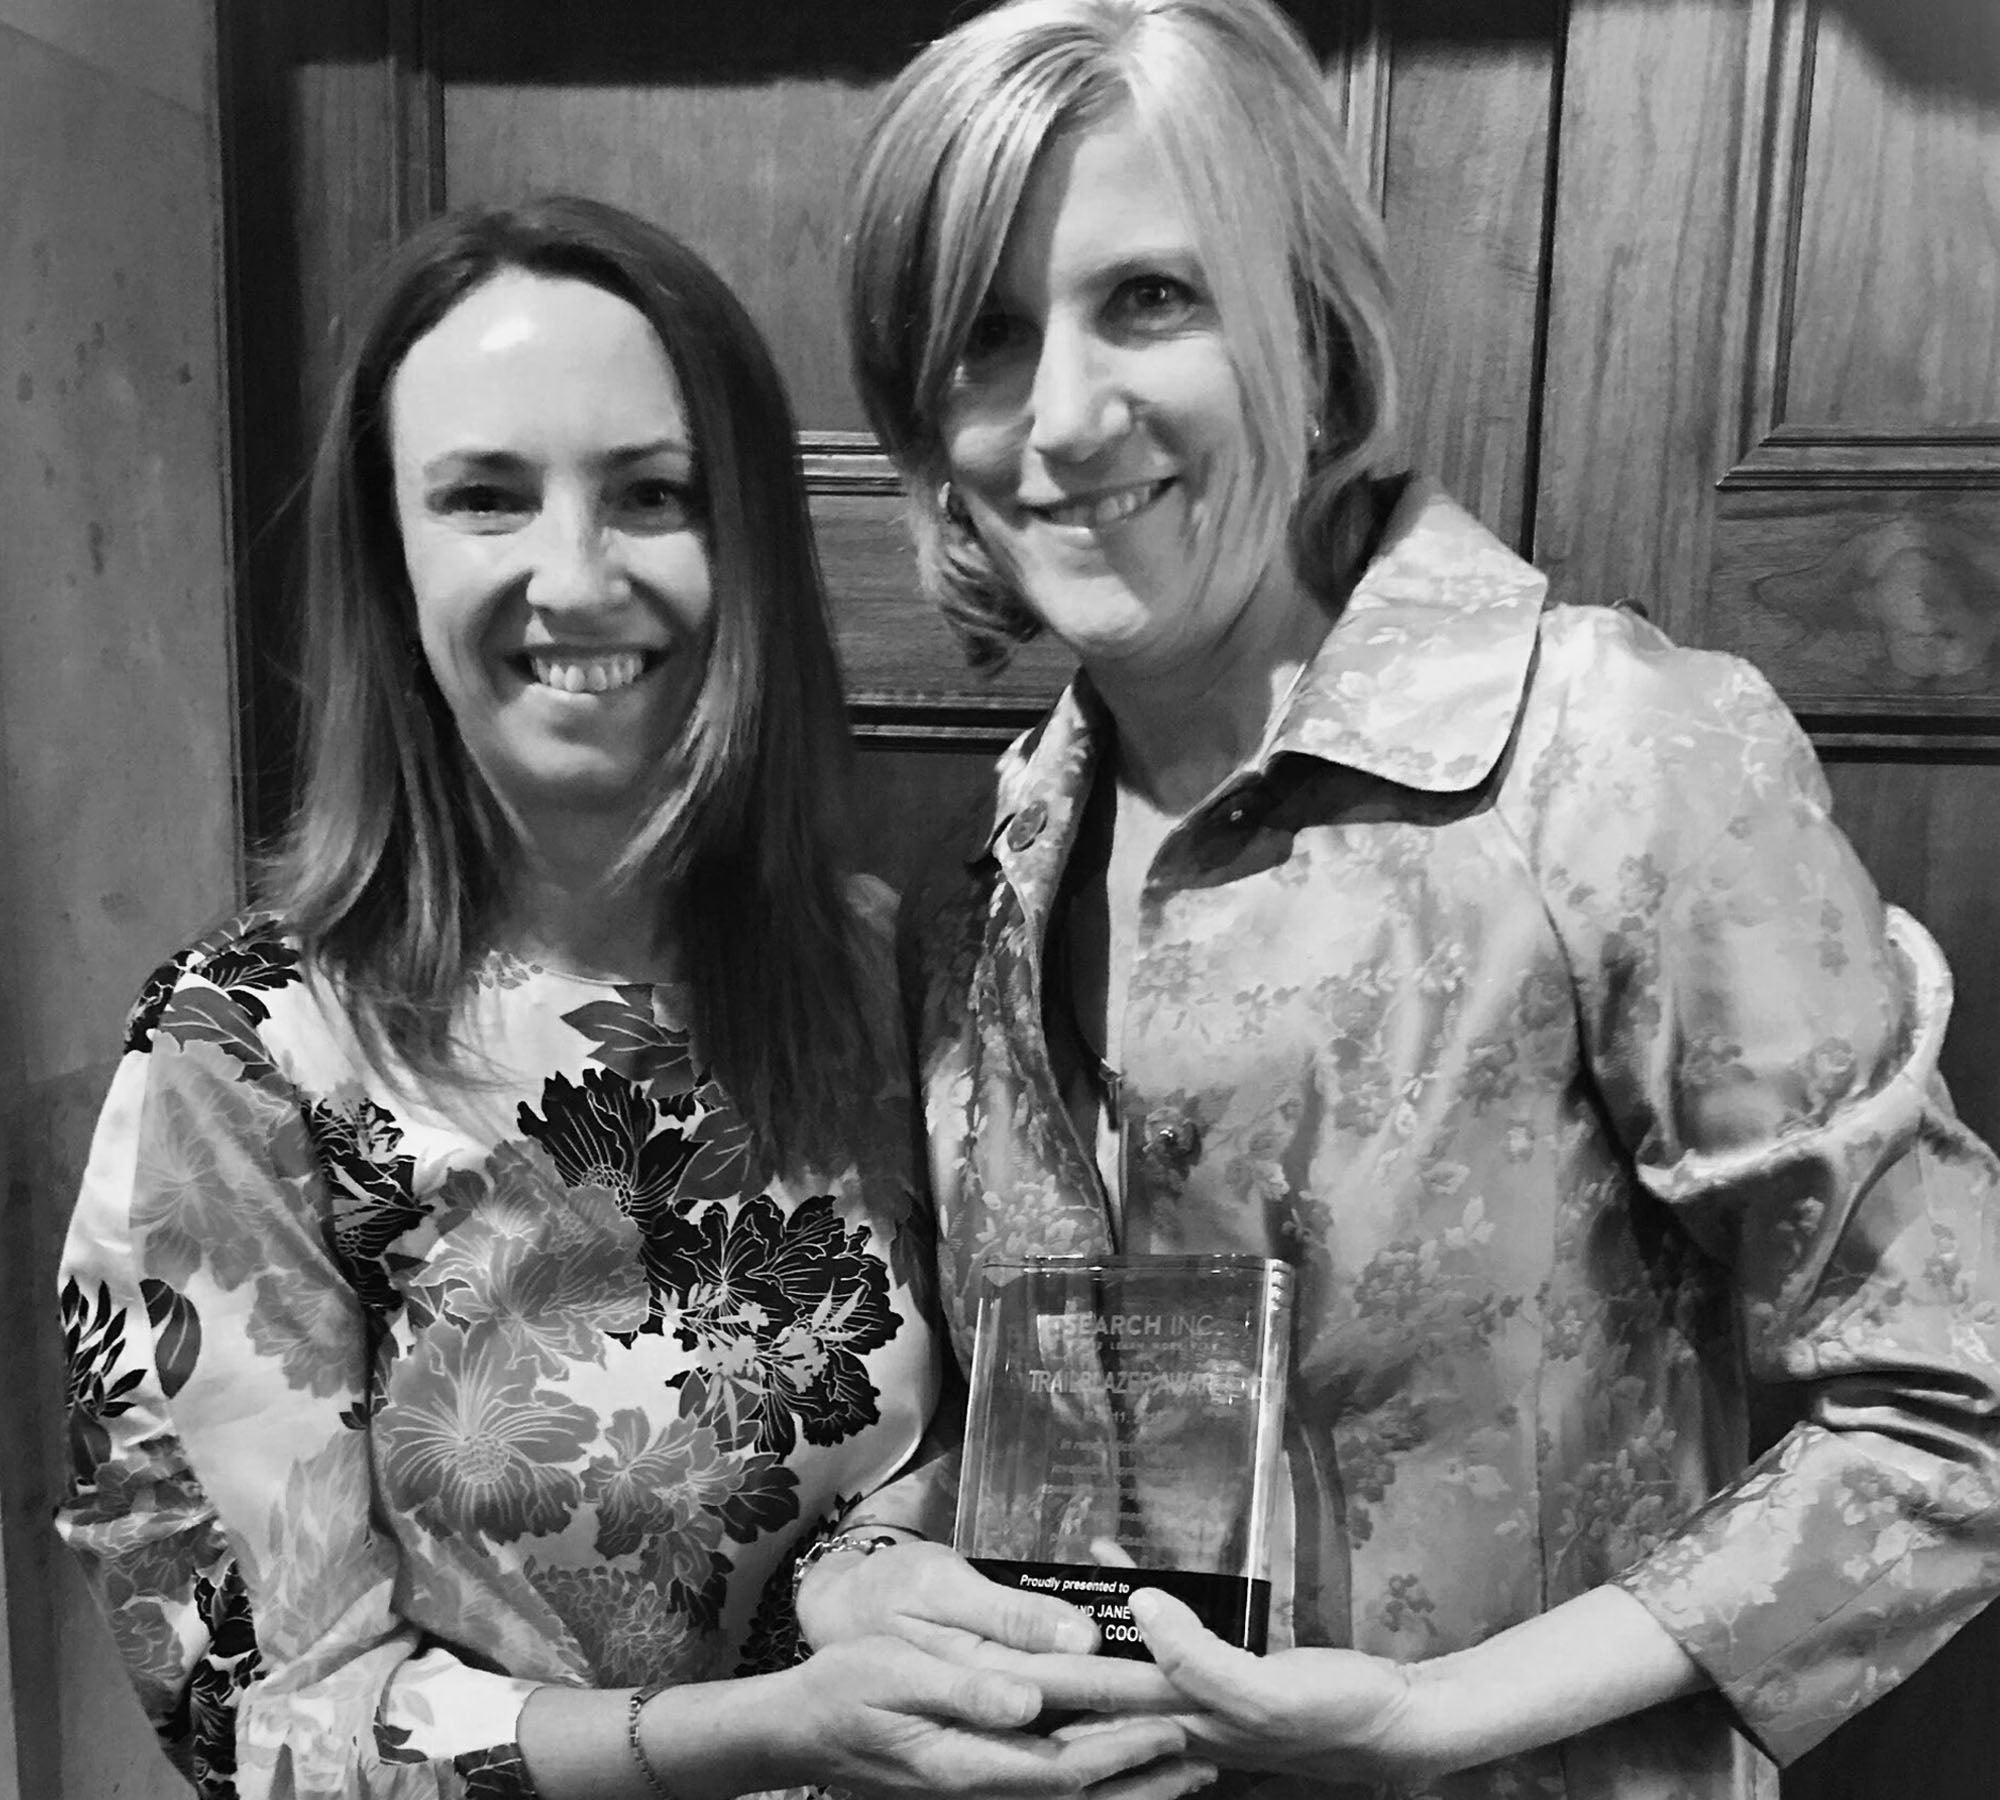 2017: Jane & Meg win the Trailblazer award from Search Inc.